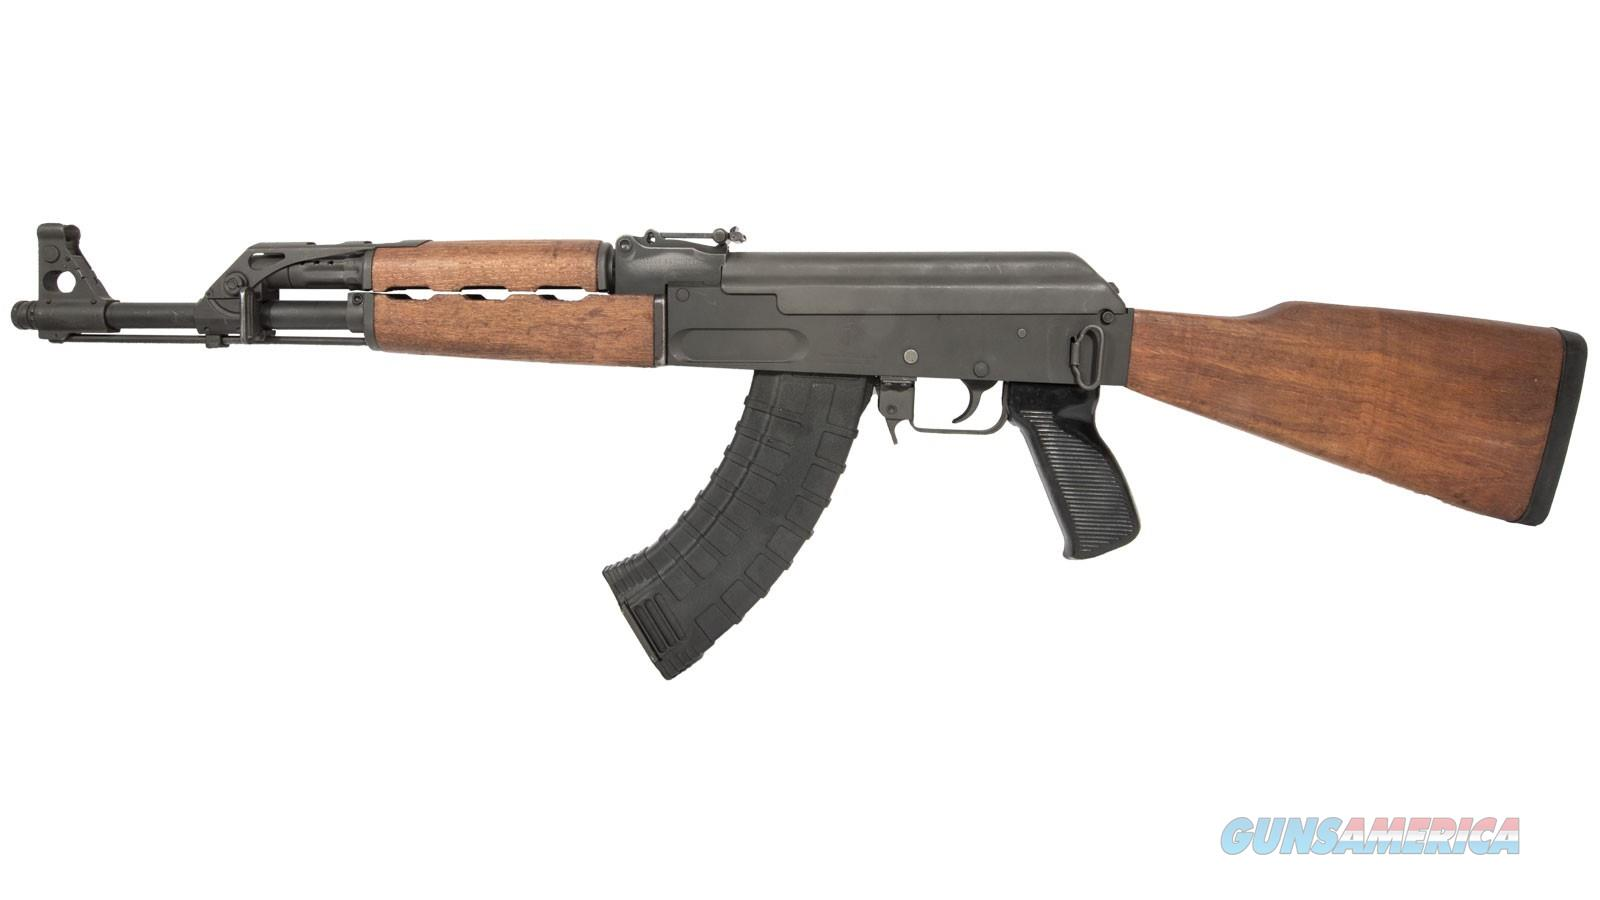 "ATI AT47 Gen 2 7.62x39mm AK-47 16.5"" 30 Rds ATIGAT47FSM   Guns > Rifles > American Tactical Imports Rifles"